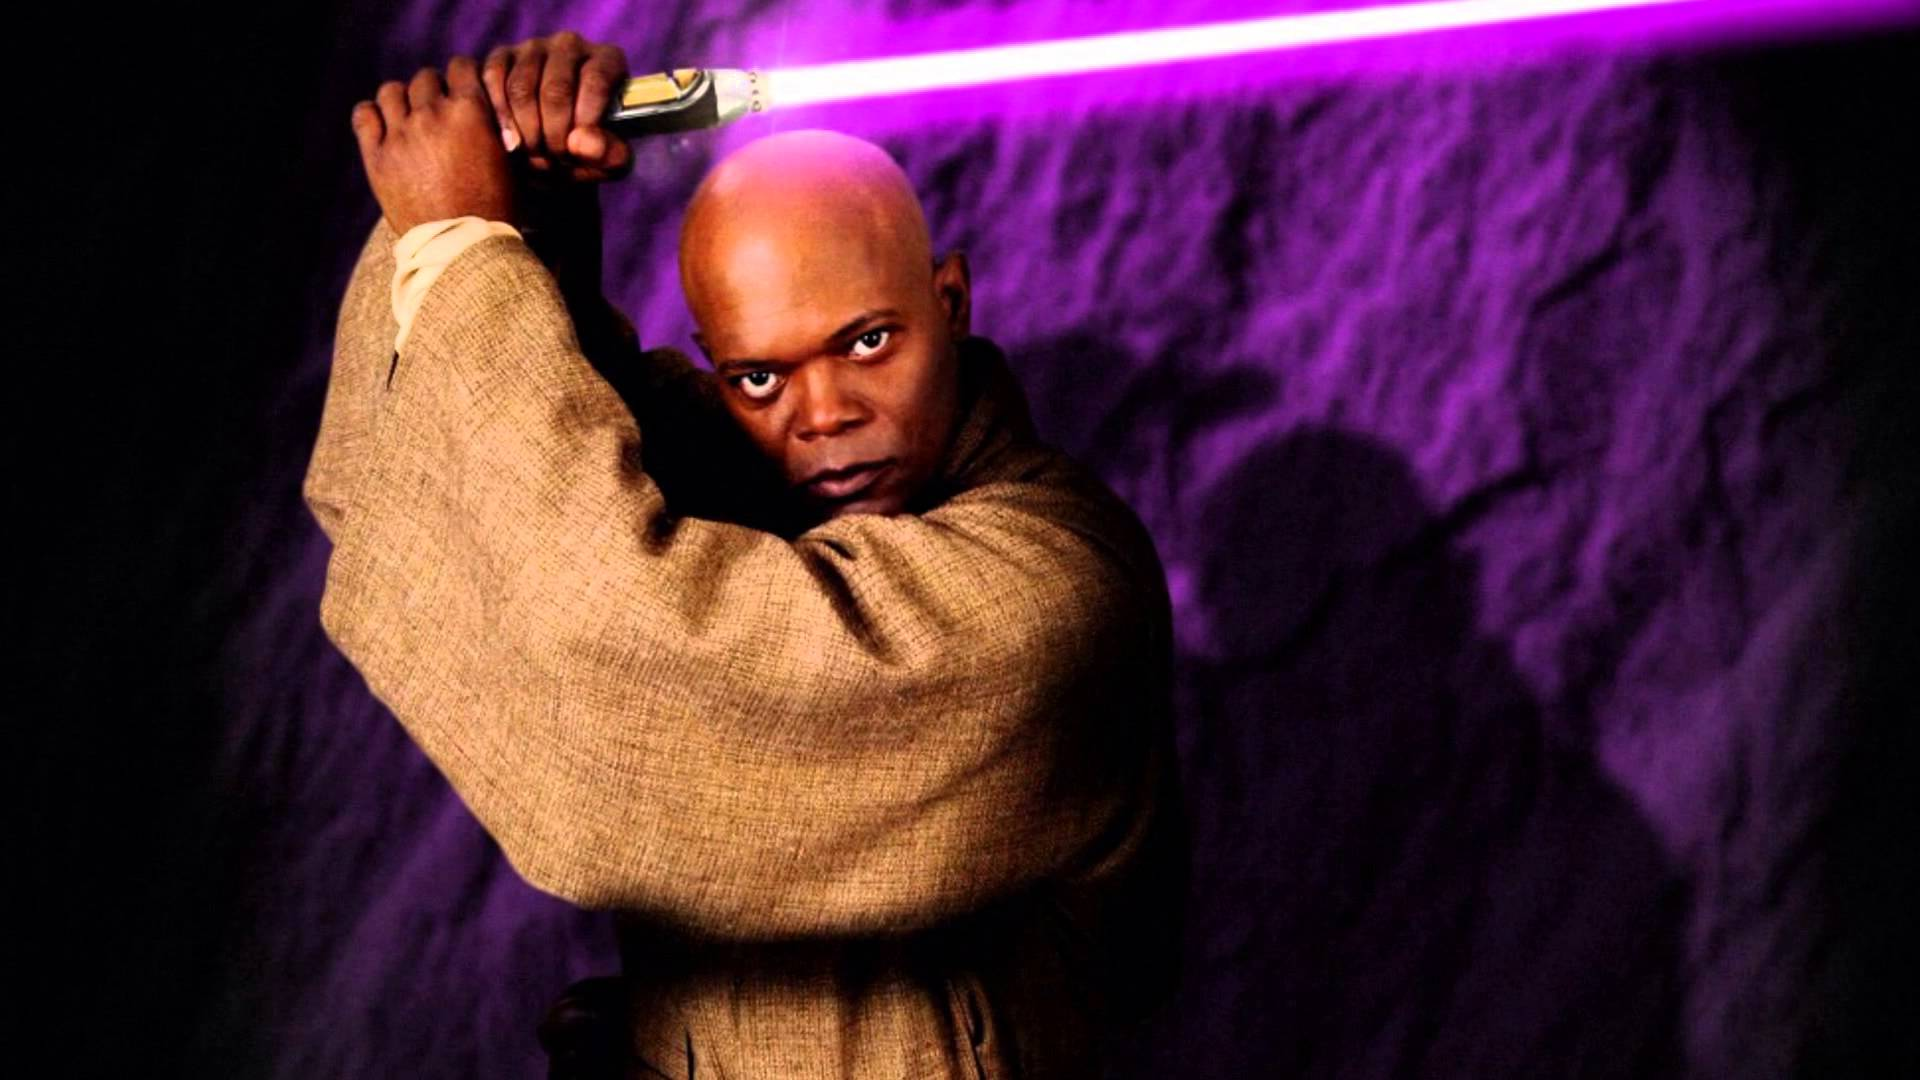 Mace Windu Wallpapers Wallpaper Cave